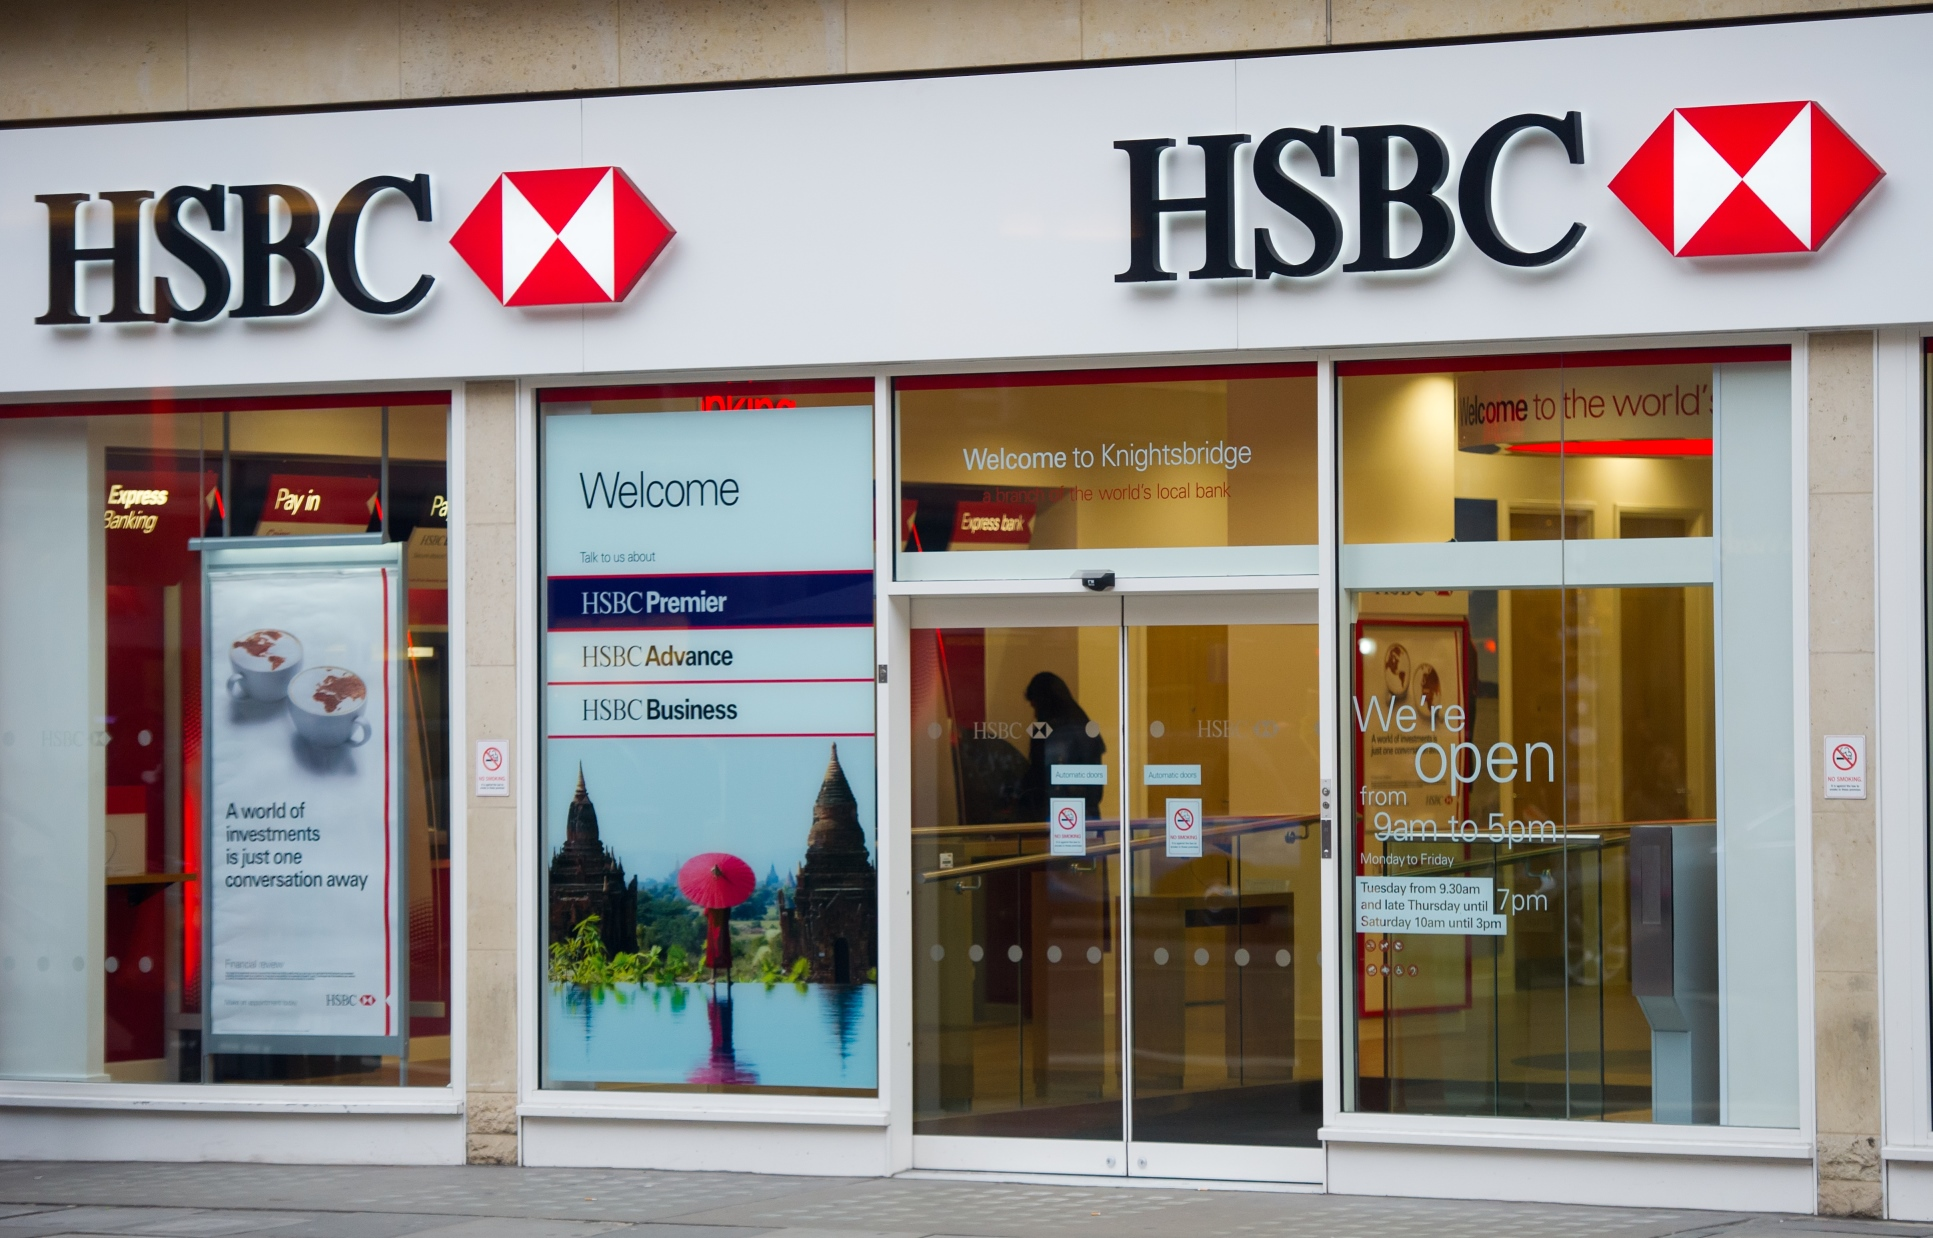 HSBC Introduces Free Wi-fi in 650 Branches - Mobile Marketing